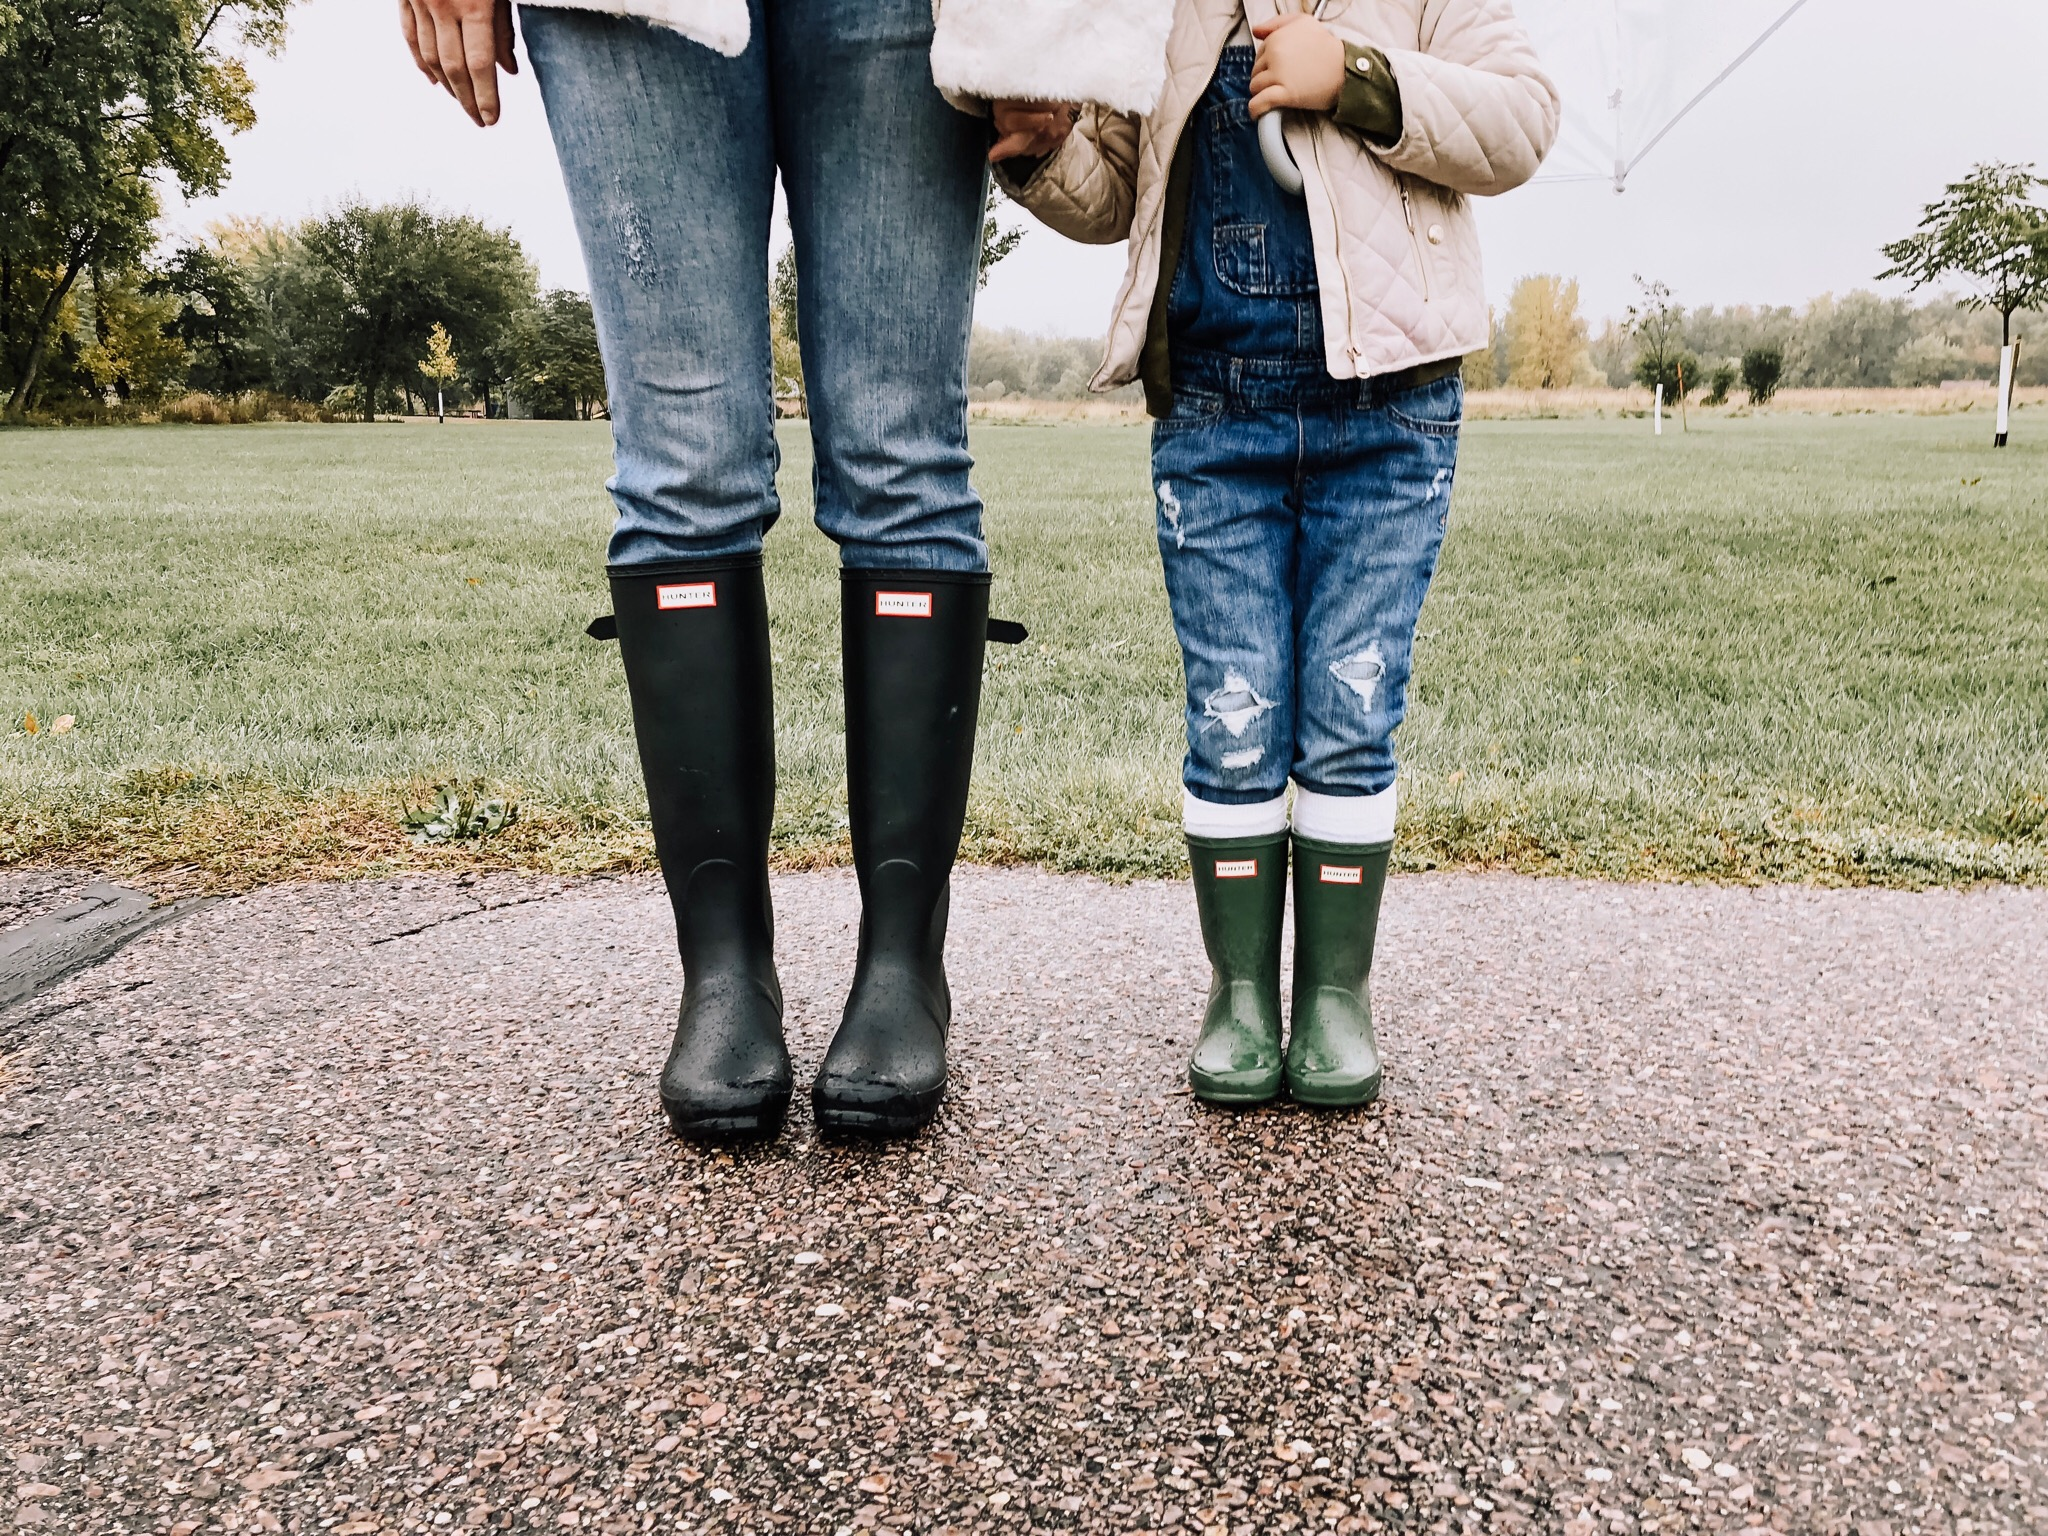 places to go when it rains (or it doesn't) in south dakota | thelovedesignedife.com #thingstodowithkids #funwithkids #travelwithkids #wanderlust